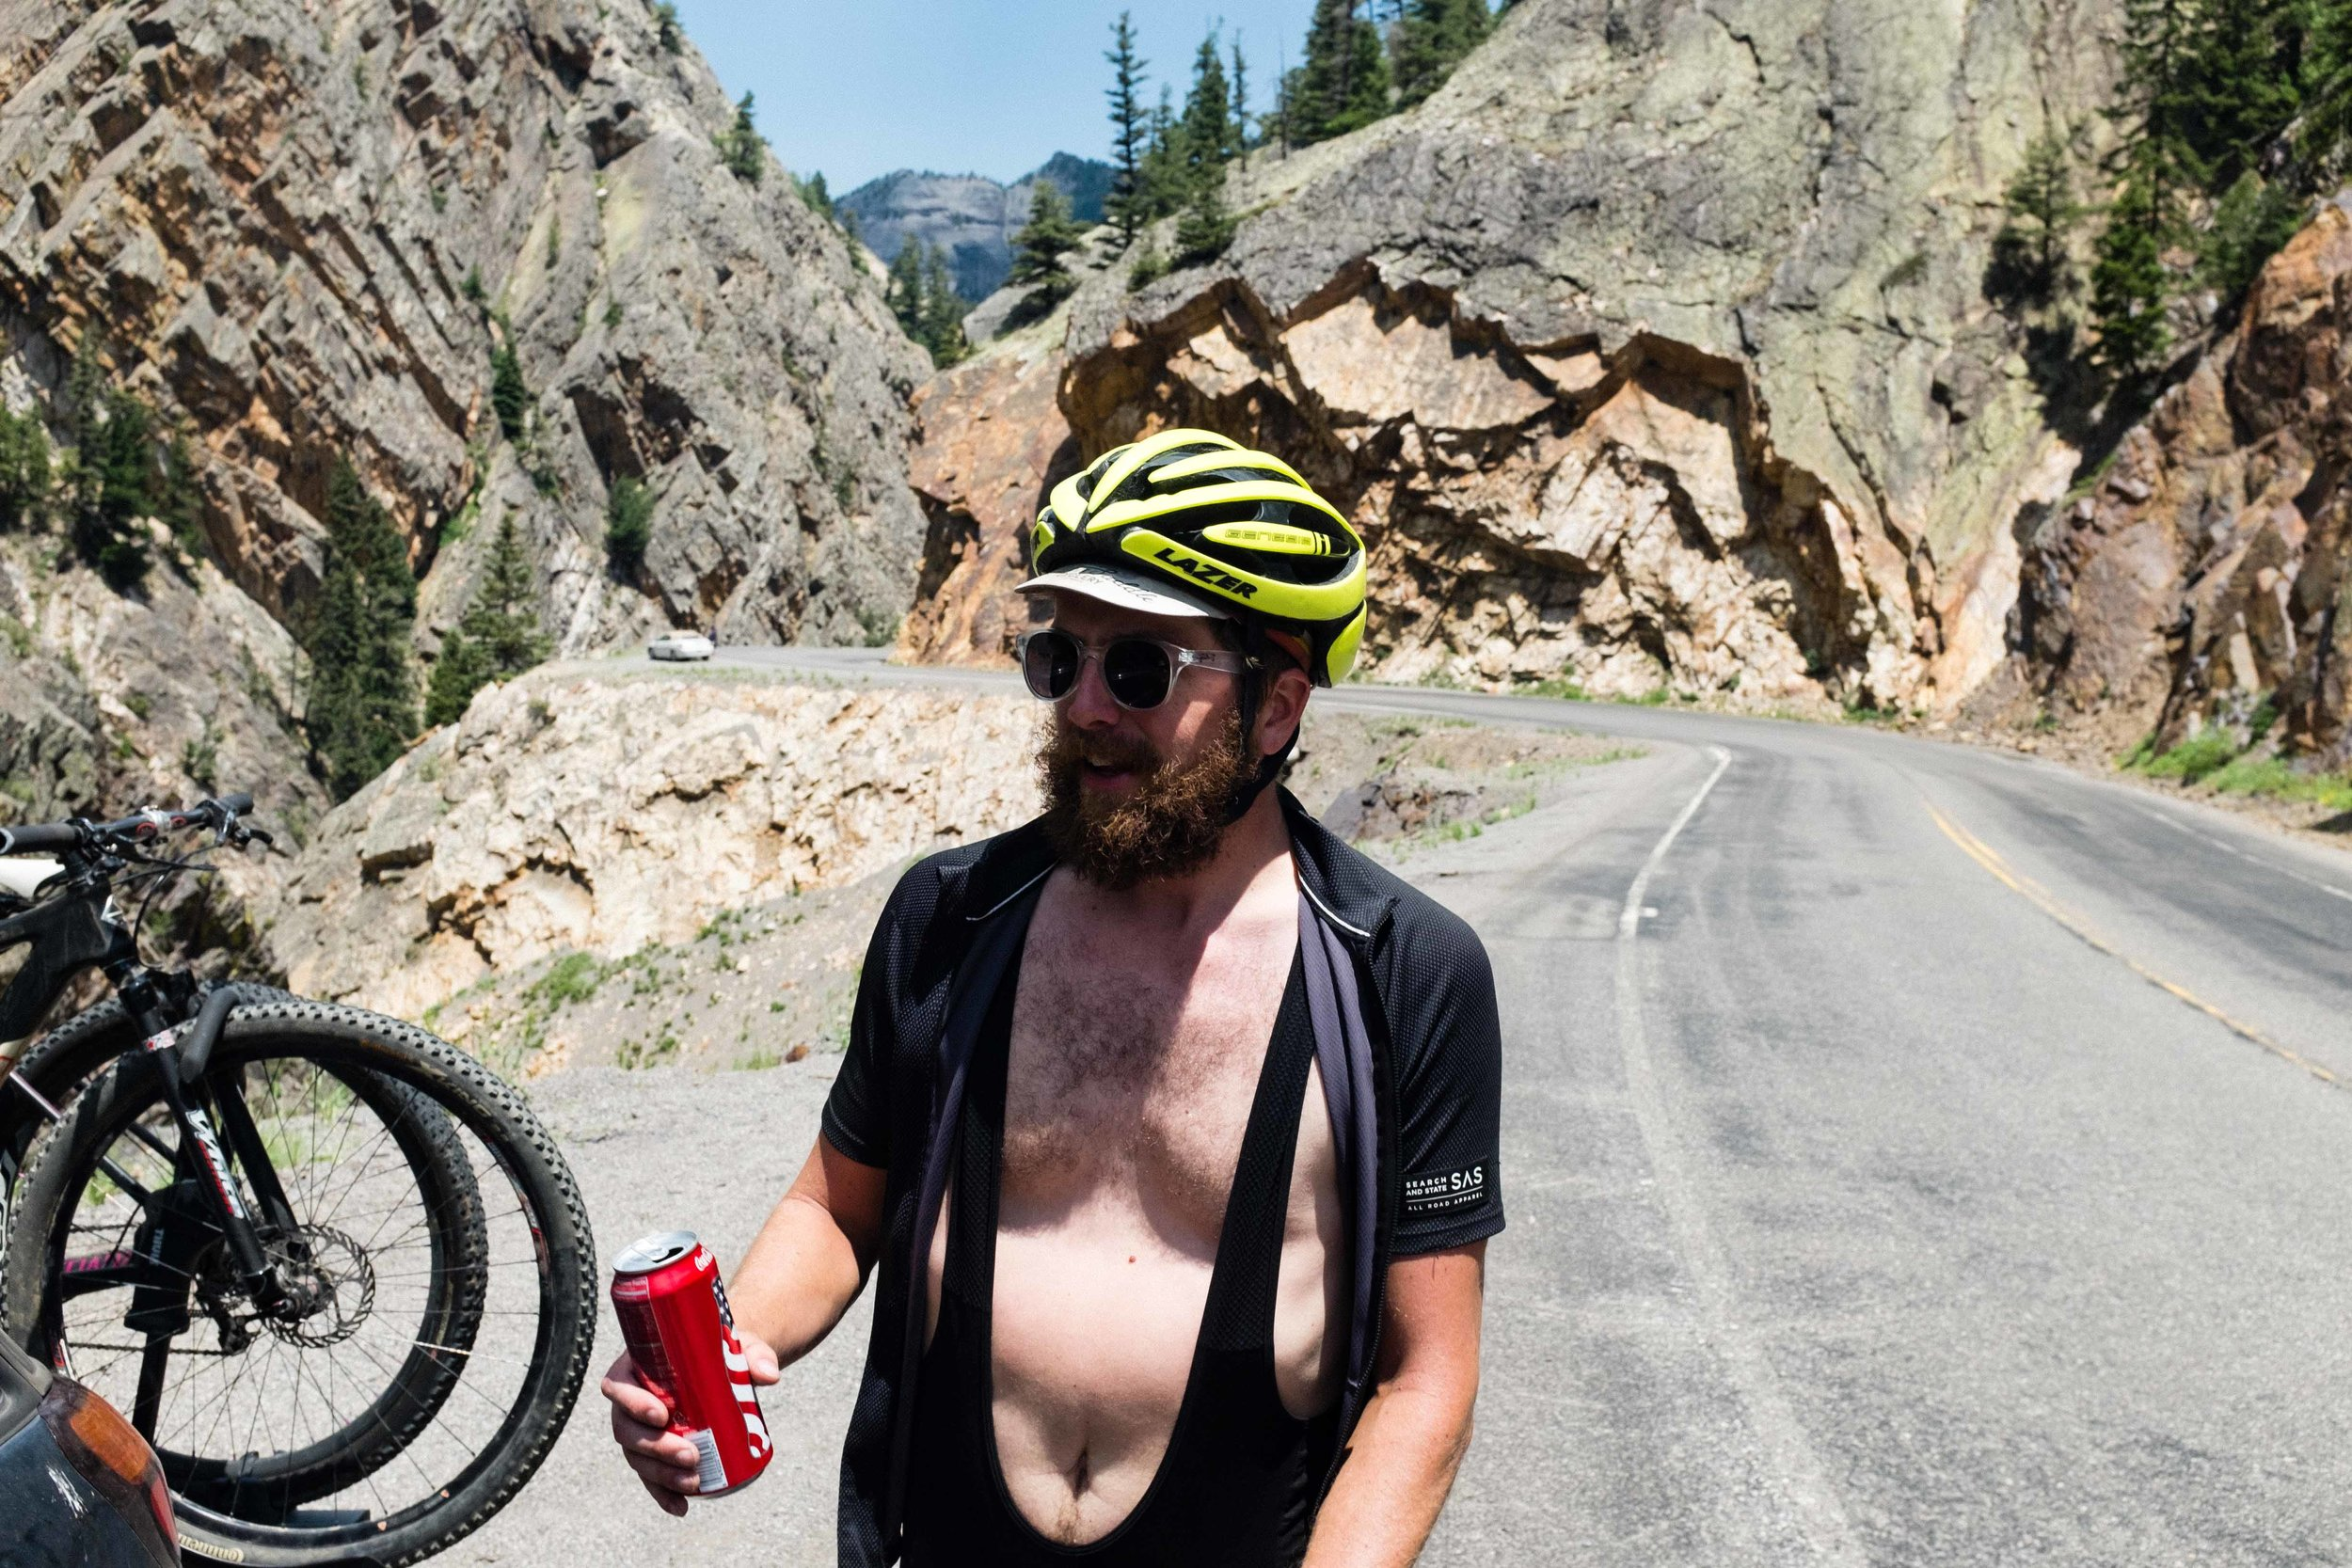 Eric and Natalie stopped on their way to the Alpine Loop Trail and tossed us a few Cokes, some water, and some bars. We call this CLUTCH.